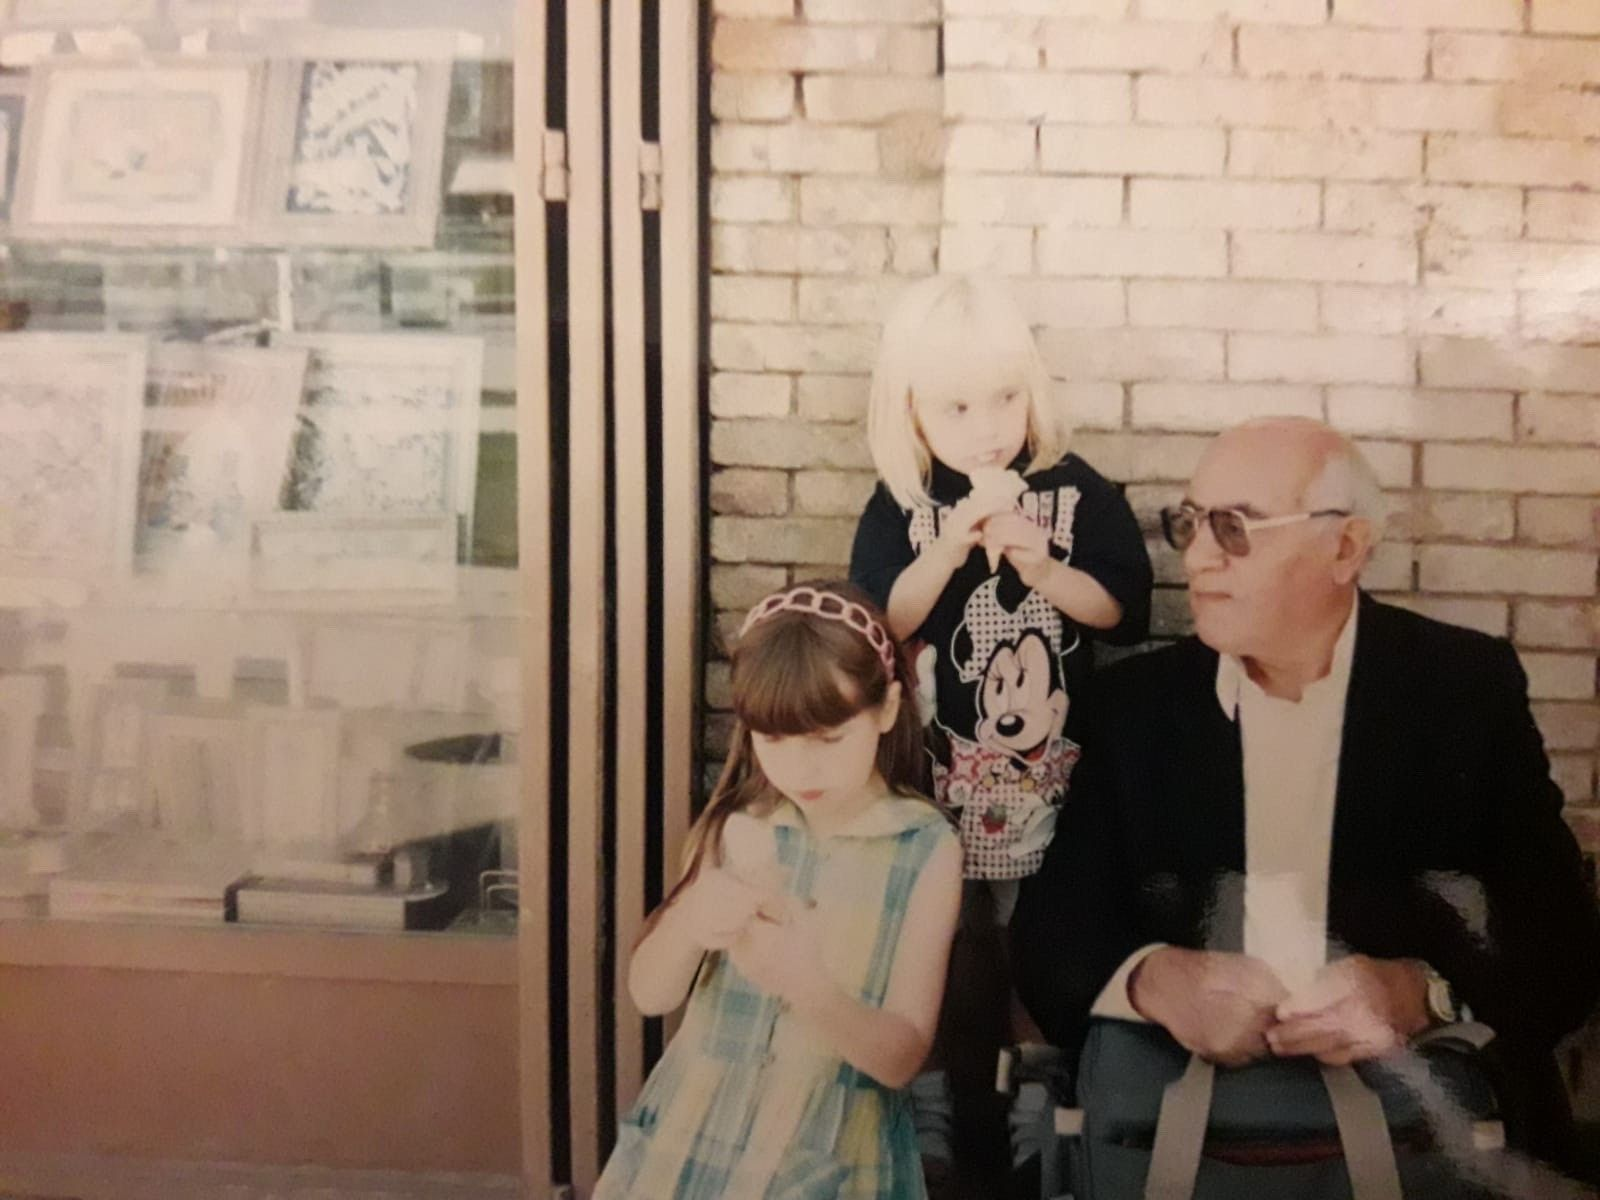 Farrah-her-sister-Eliana-and-her-grandfather-in-Iran